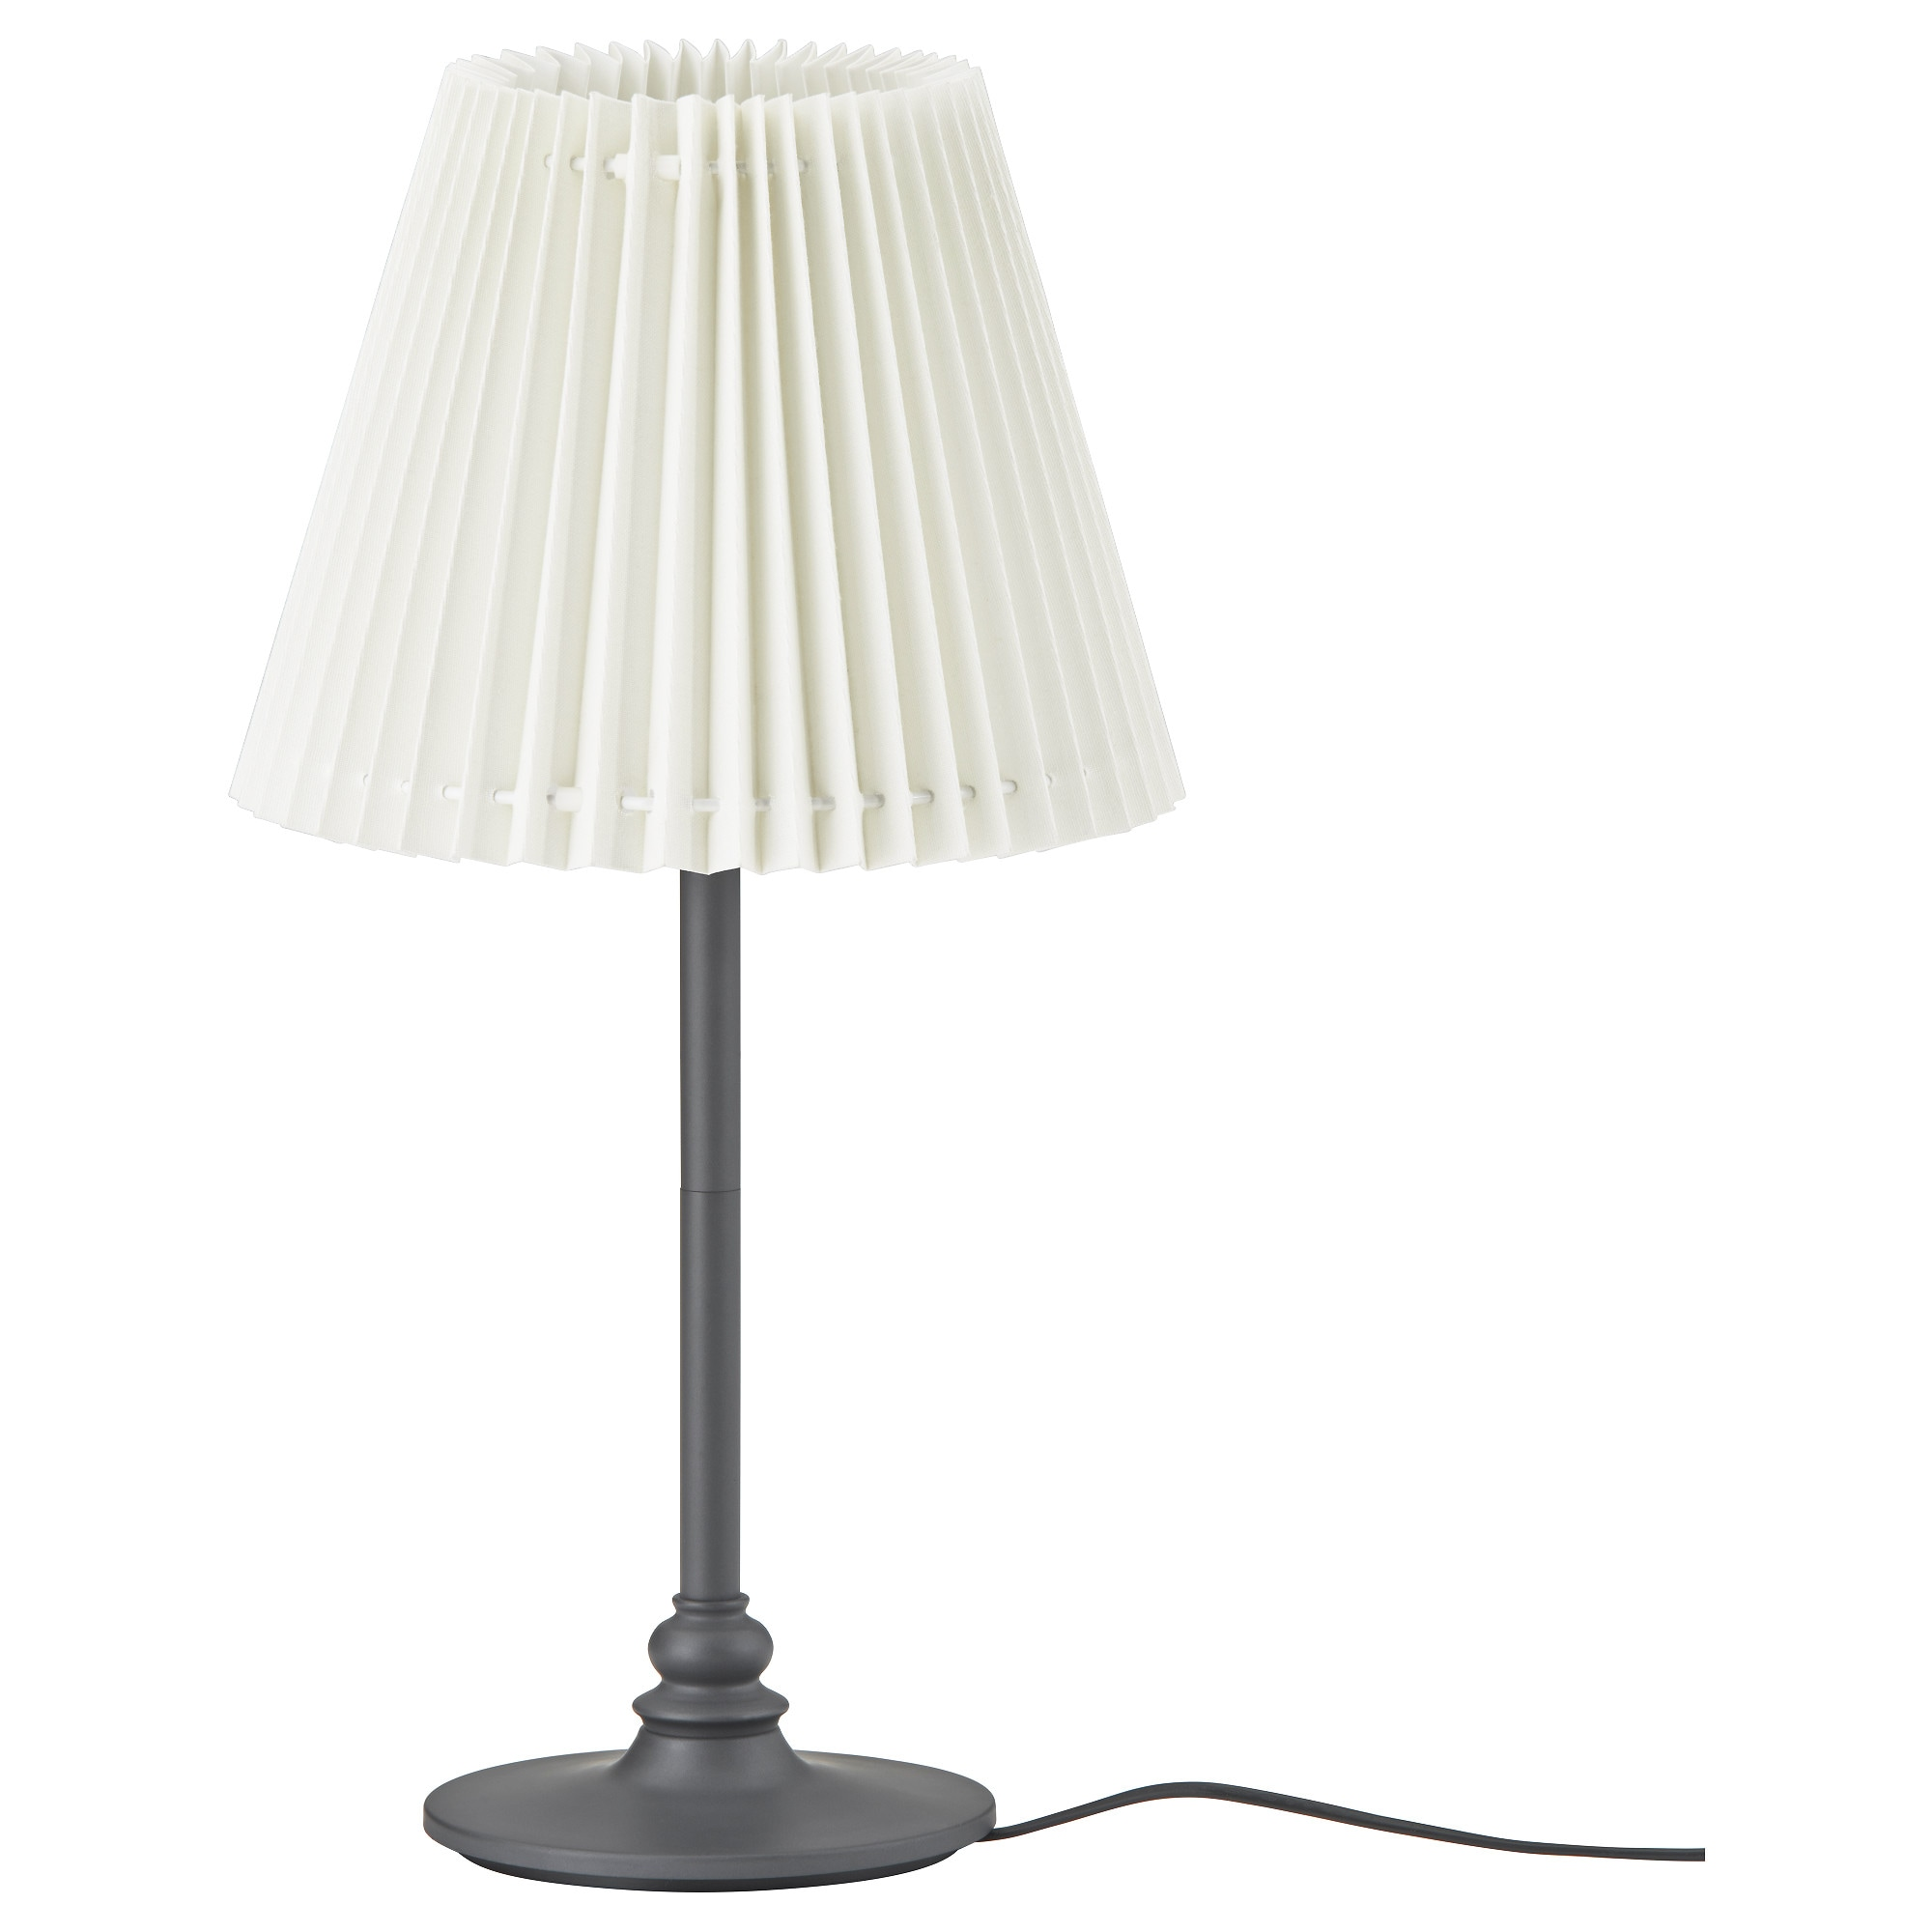 ÄNGLAND Table Lamp   IKEA